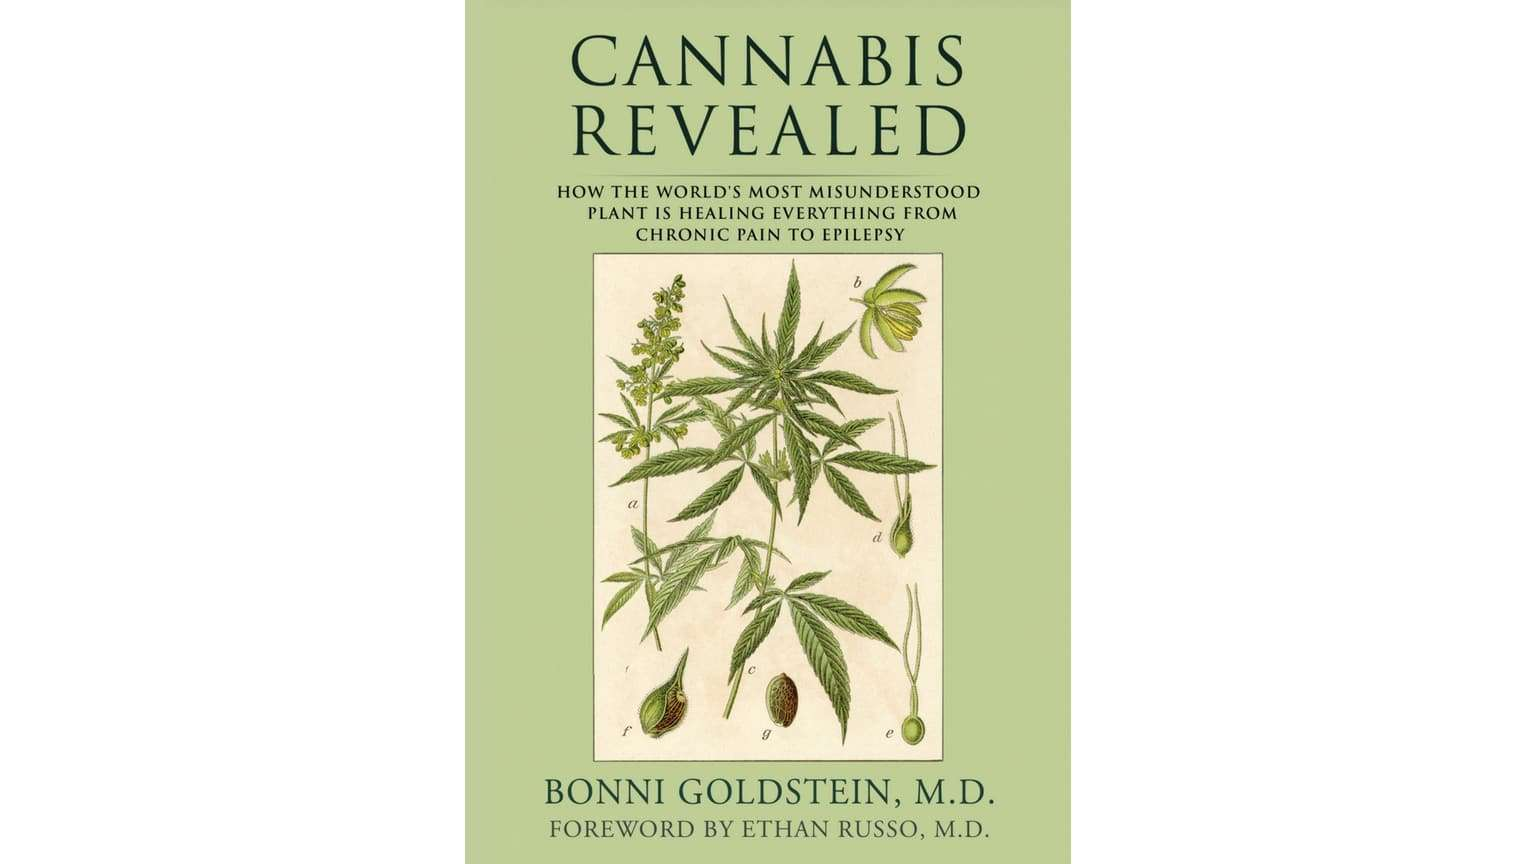 cannabis-revealed-dr-bonni-goldstein